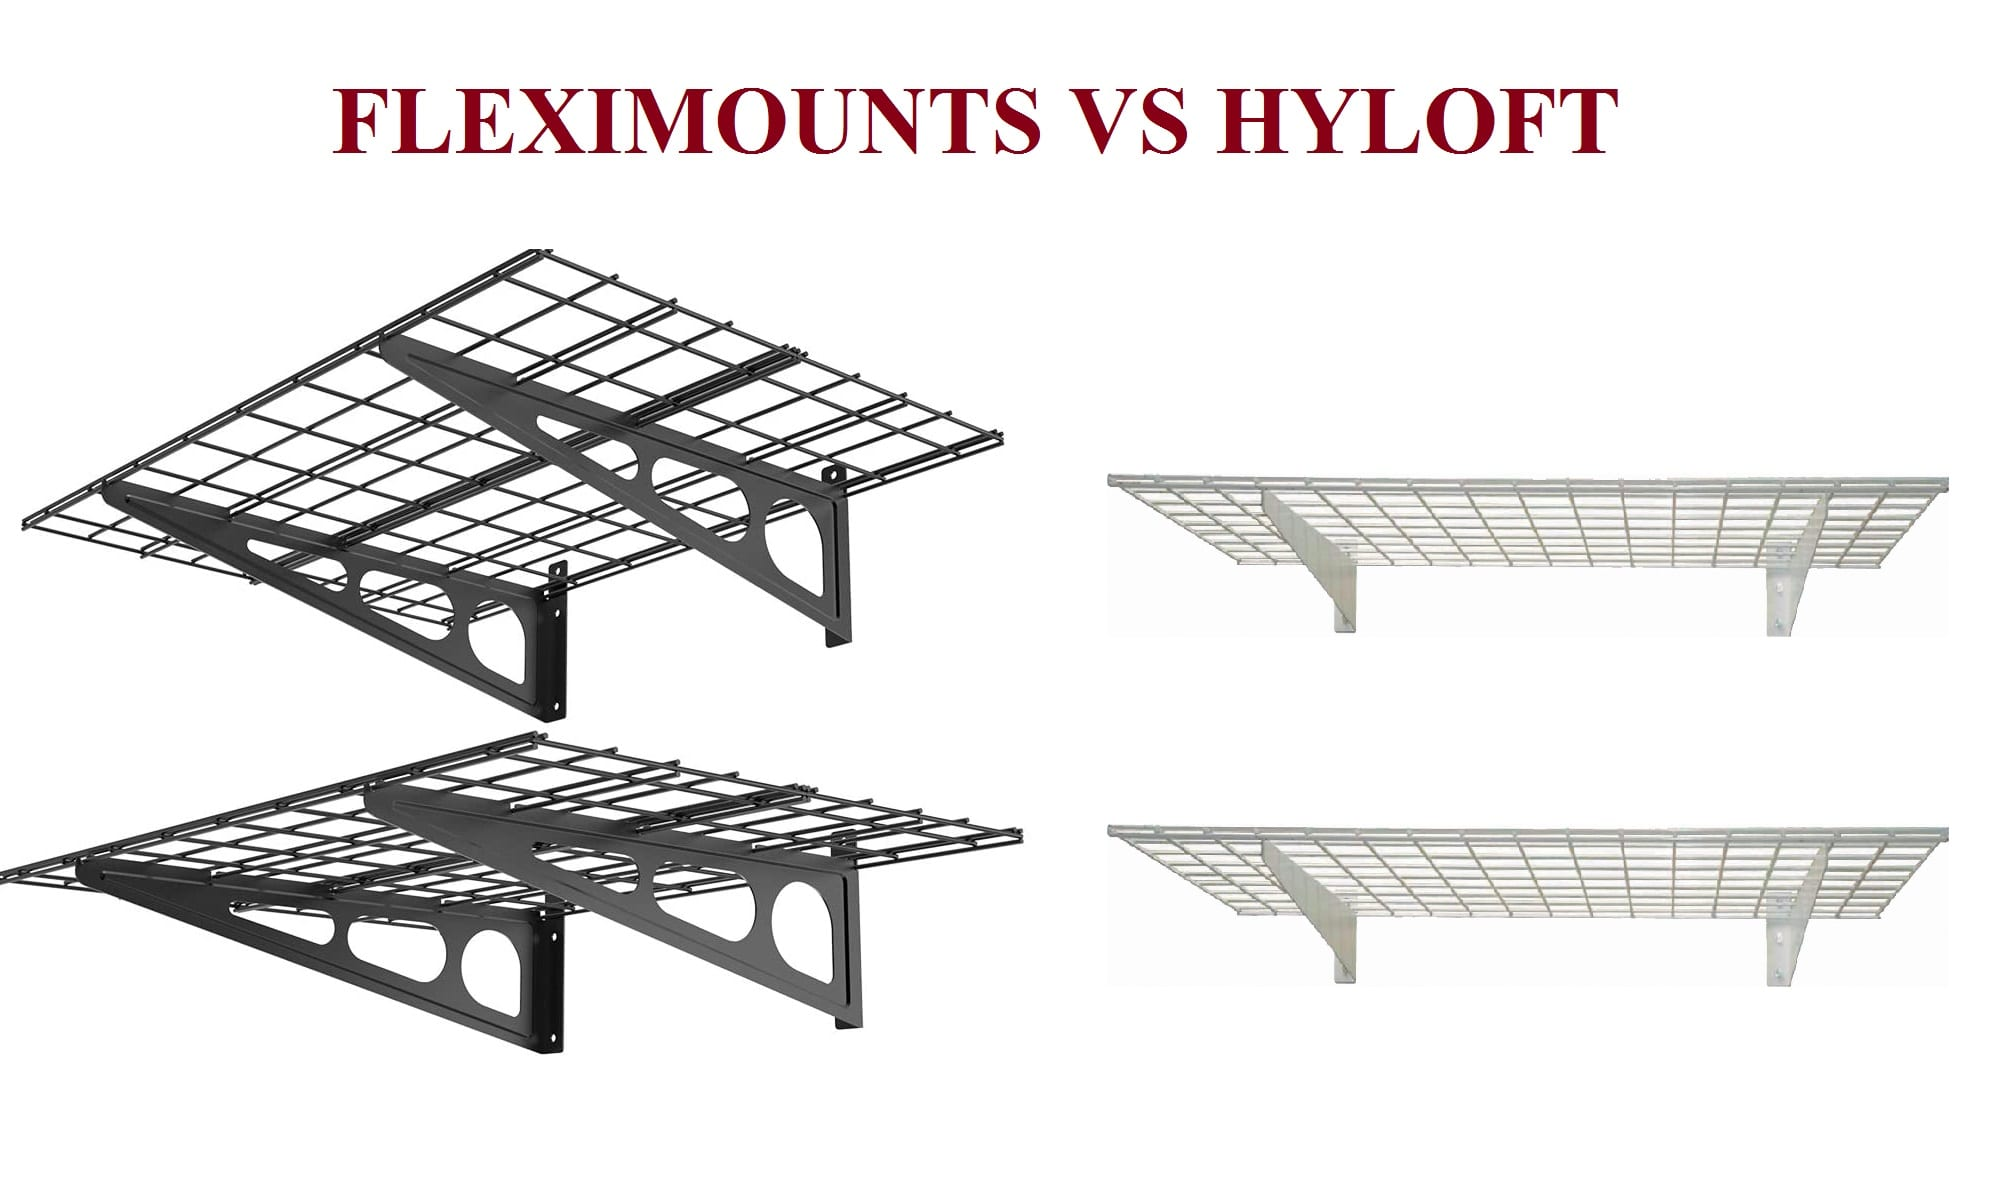 fleximounts vs hyloft